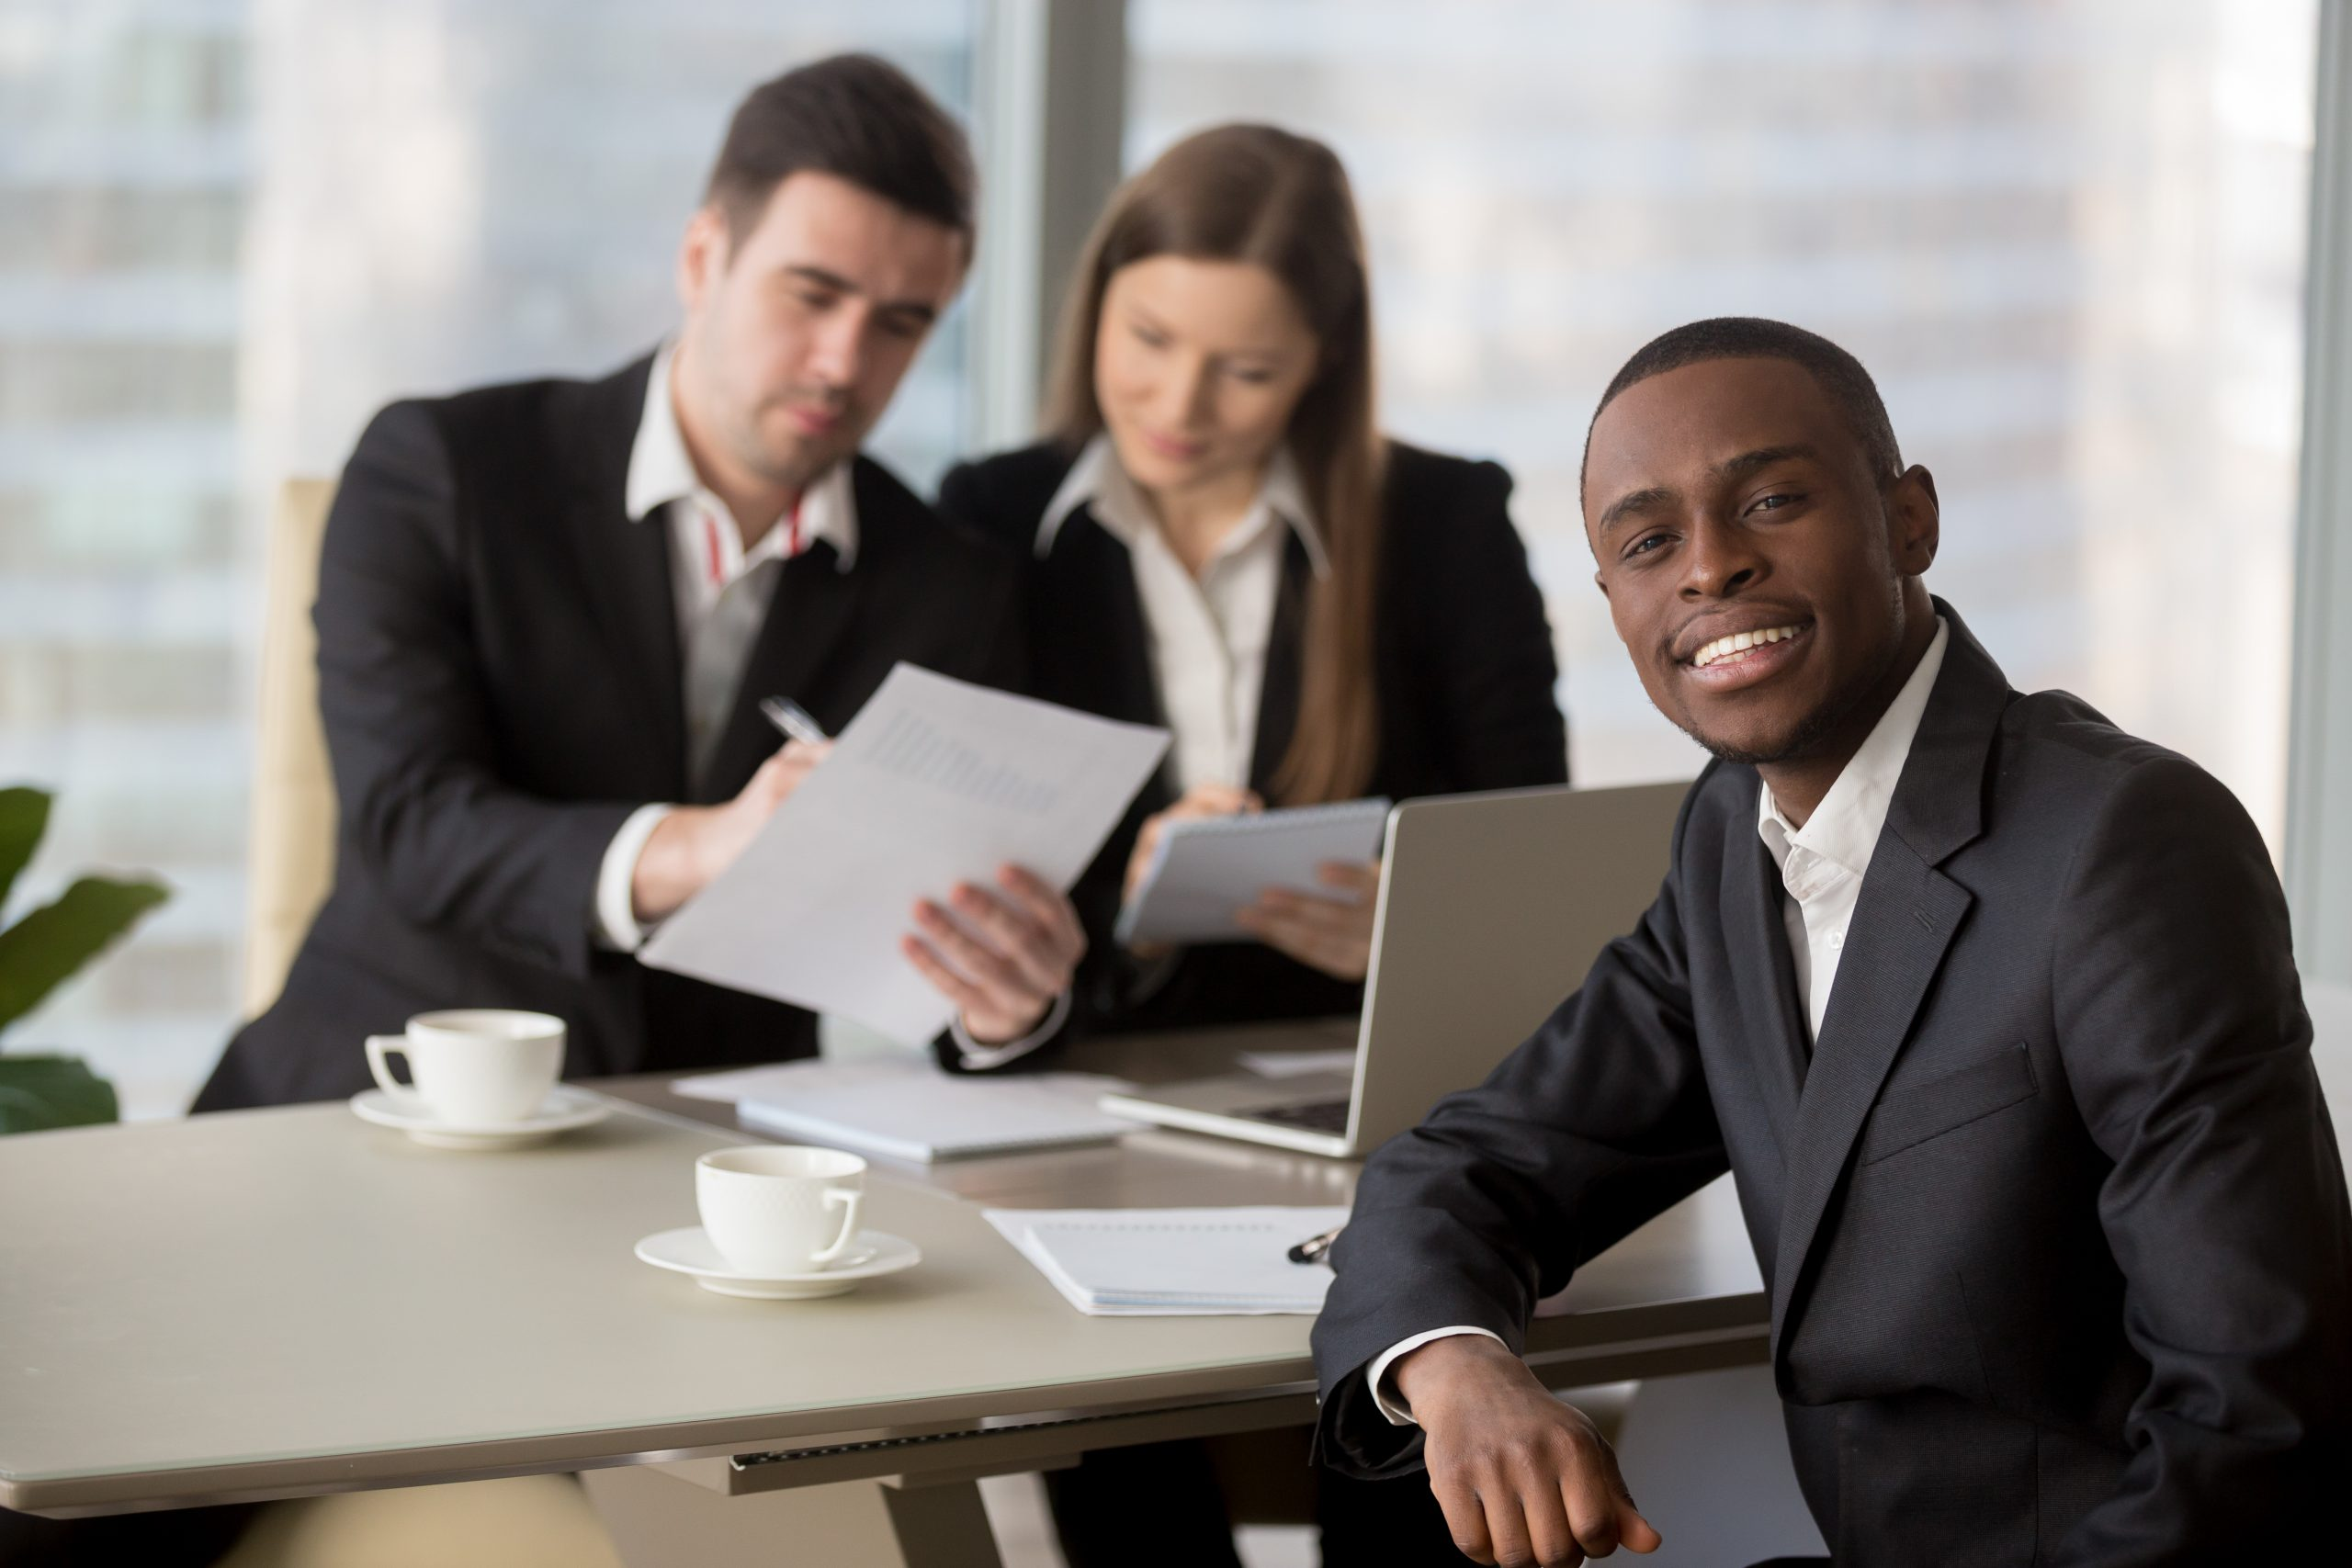 HR managers reading resume of black job applicant